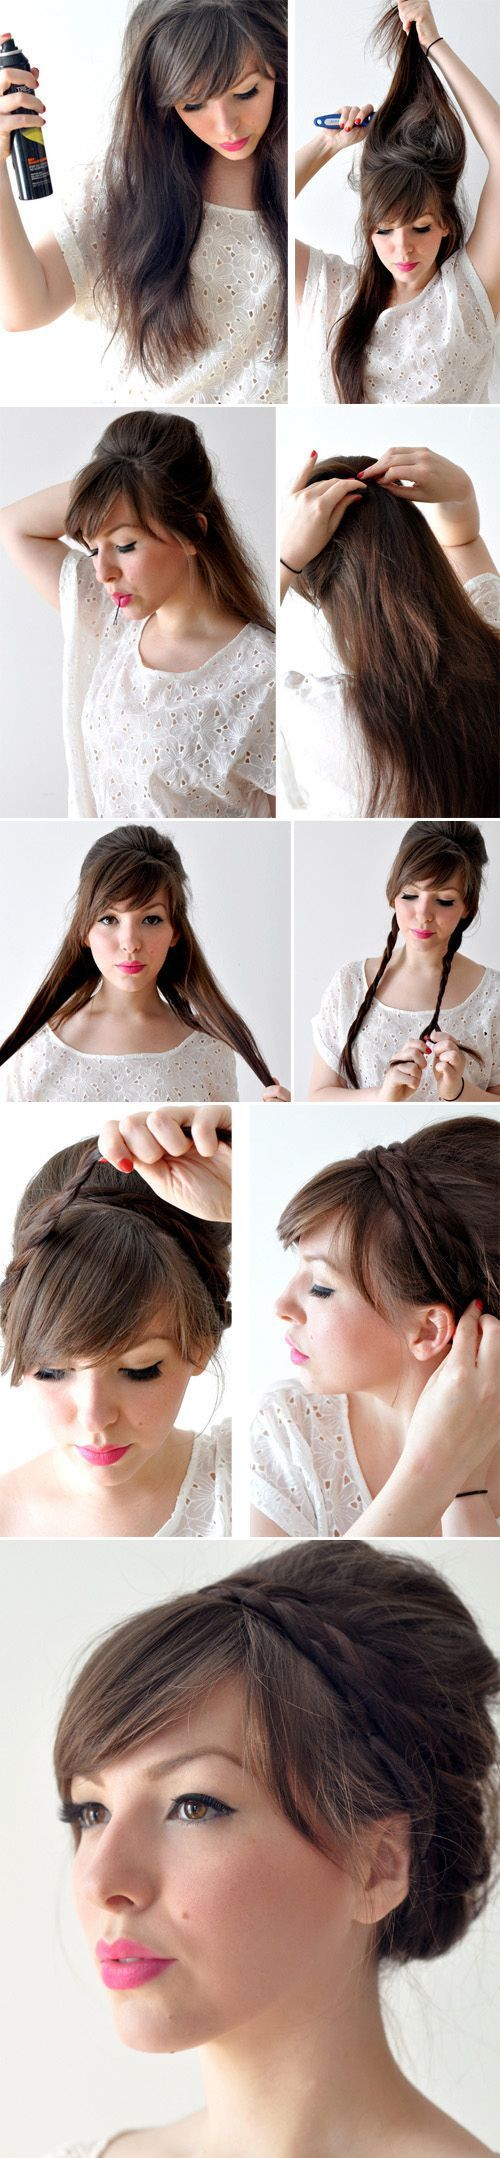 Easy long hair up-do<--@Kathleen S S Britsch I saw this and thought of you. I don't know what the back looks like, but from the front it is gorgeous!